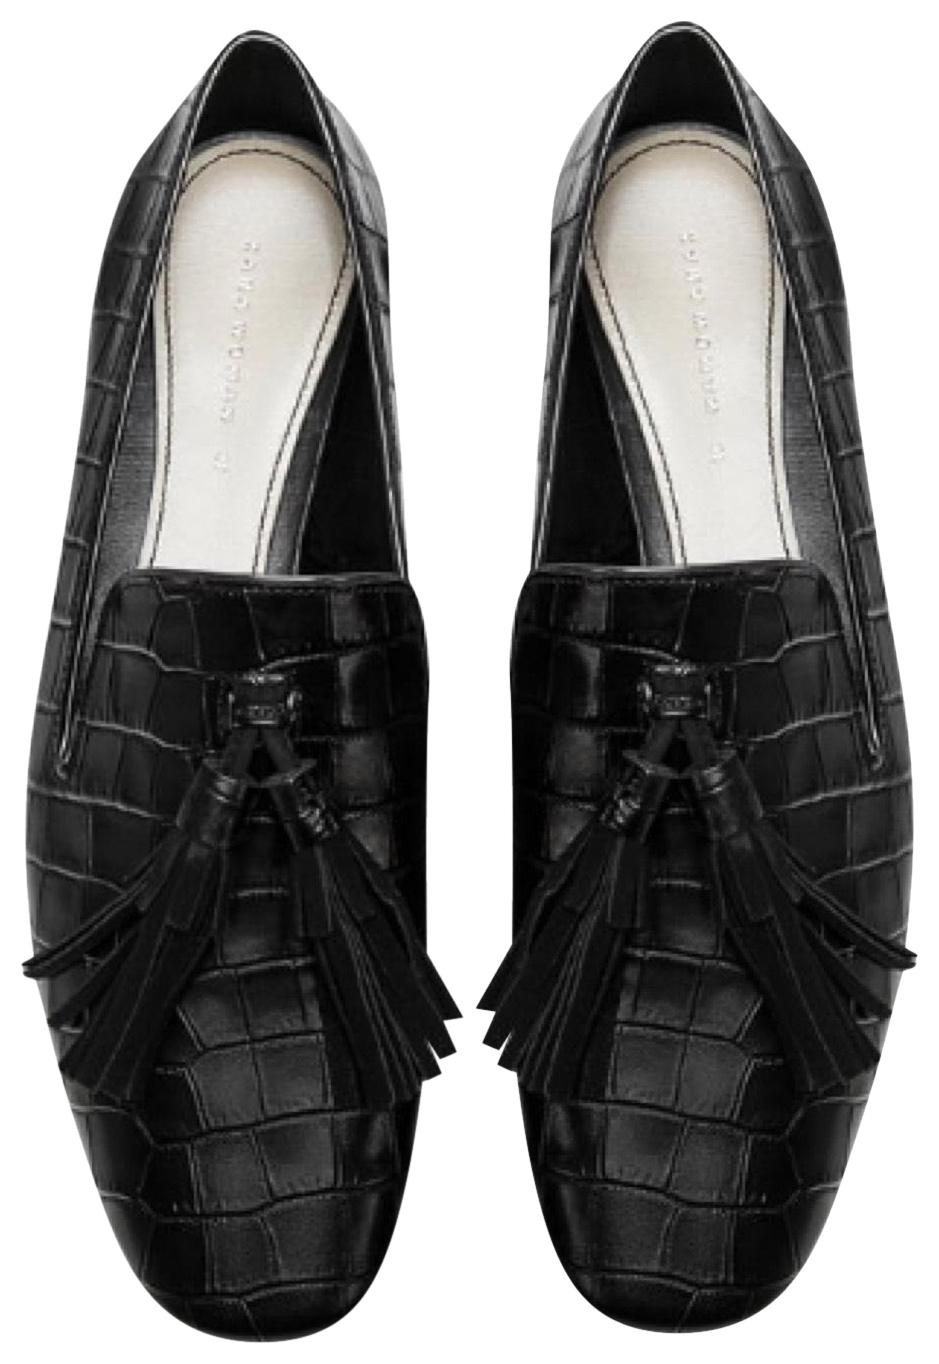 fc995d4935c Zara Black Embossed Leather Loafers Loafers Loafers Flats Size EU 38 (Approx.  US 8) Regular (M